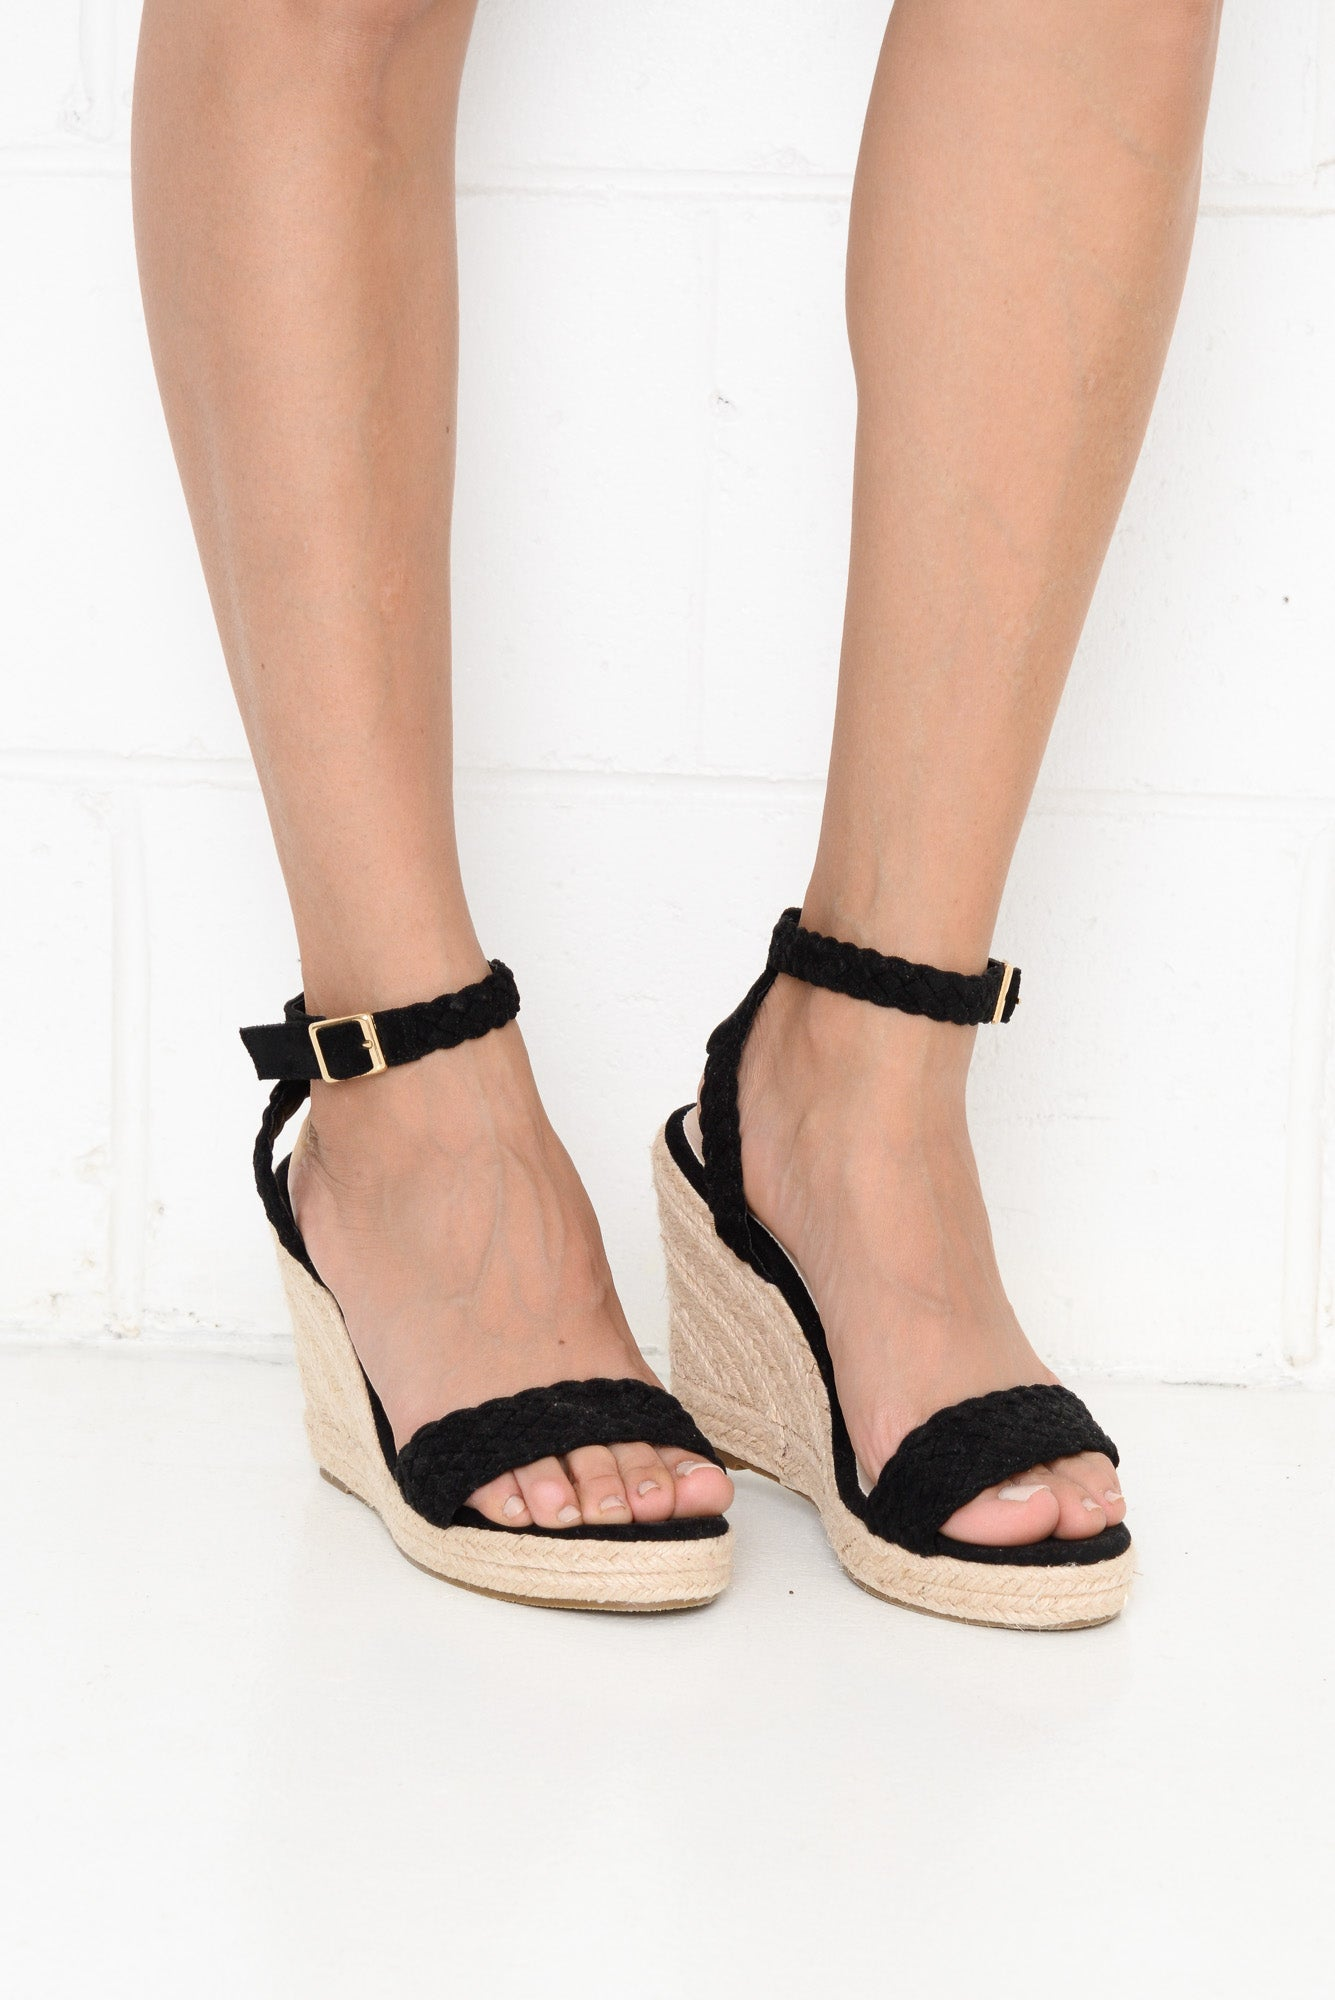 Pepper Black Wedge Heel